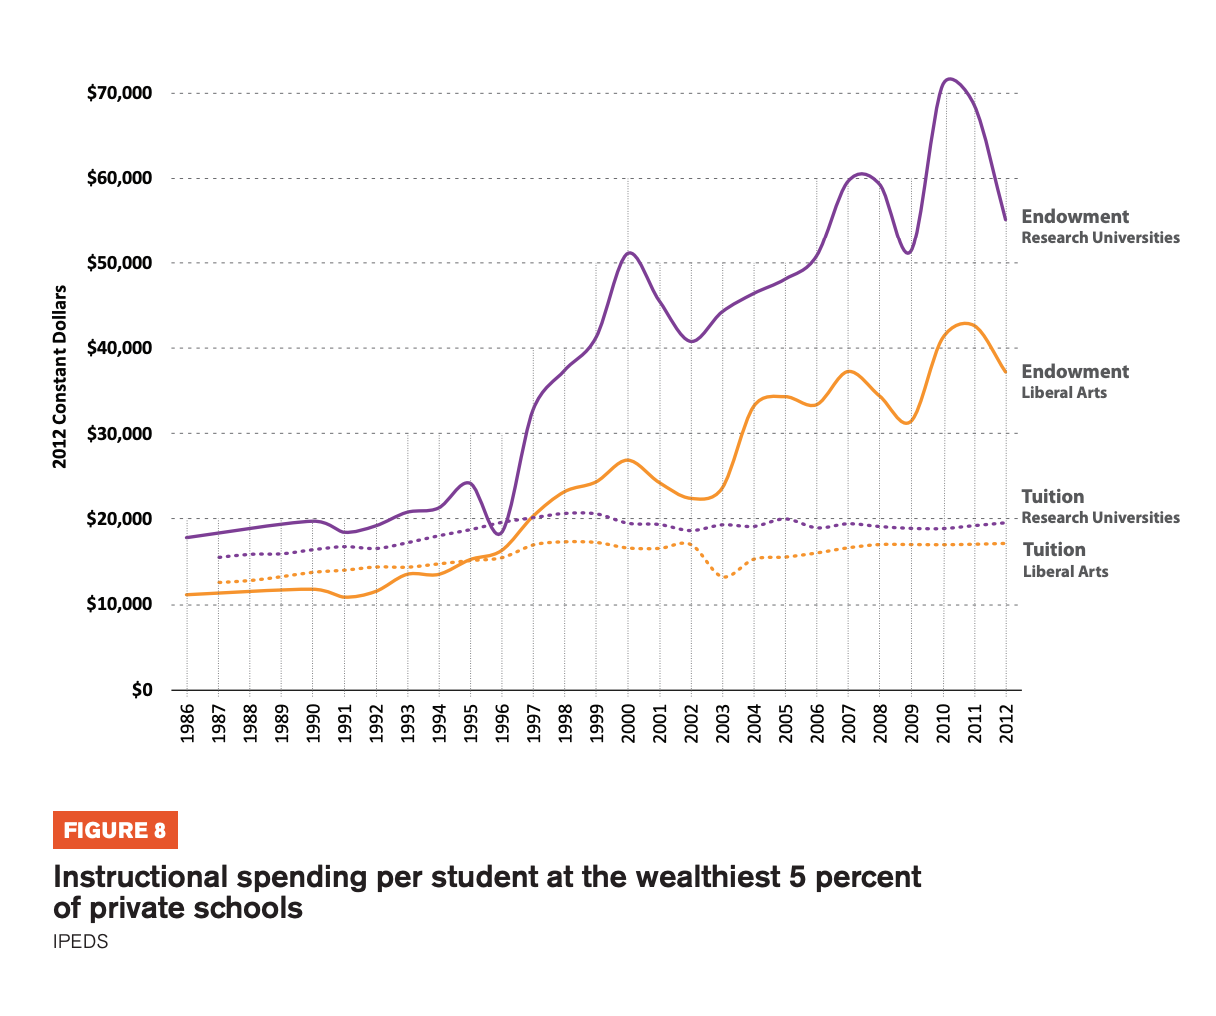 Figure 8 includes graphs showing Instructional spending per student at the wealthiest 5 percent of private schools